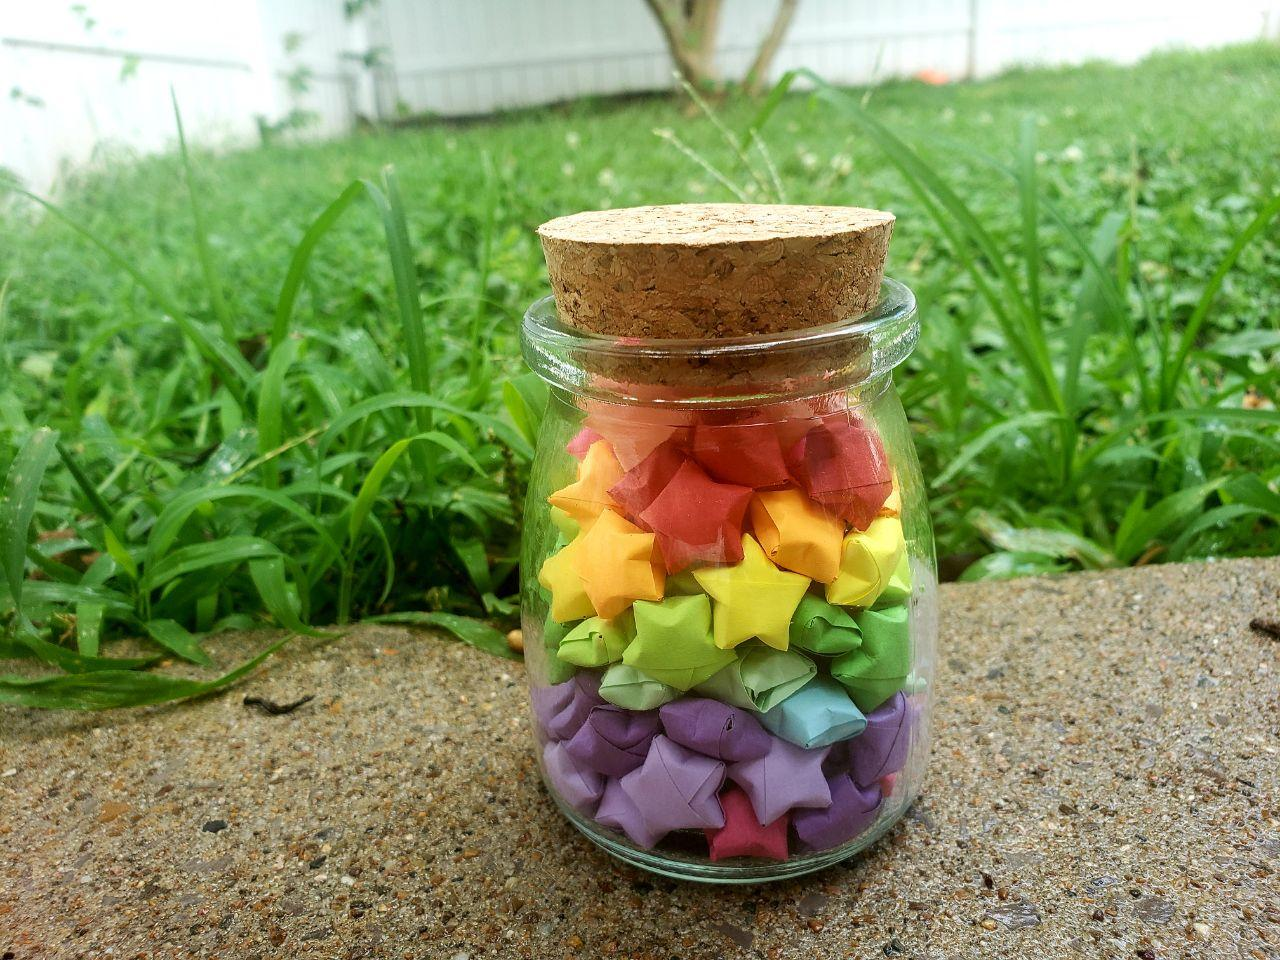 Star Jar, Star Jars, Star Jars - Sciggles